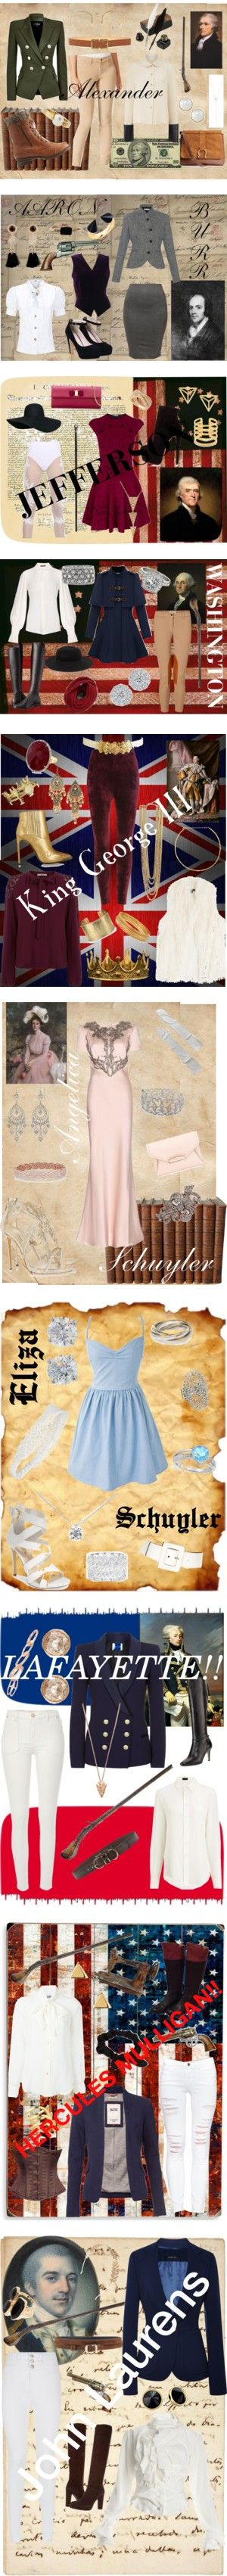 Hamilton Outfits by midsweetalk on Polyvore featuring art